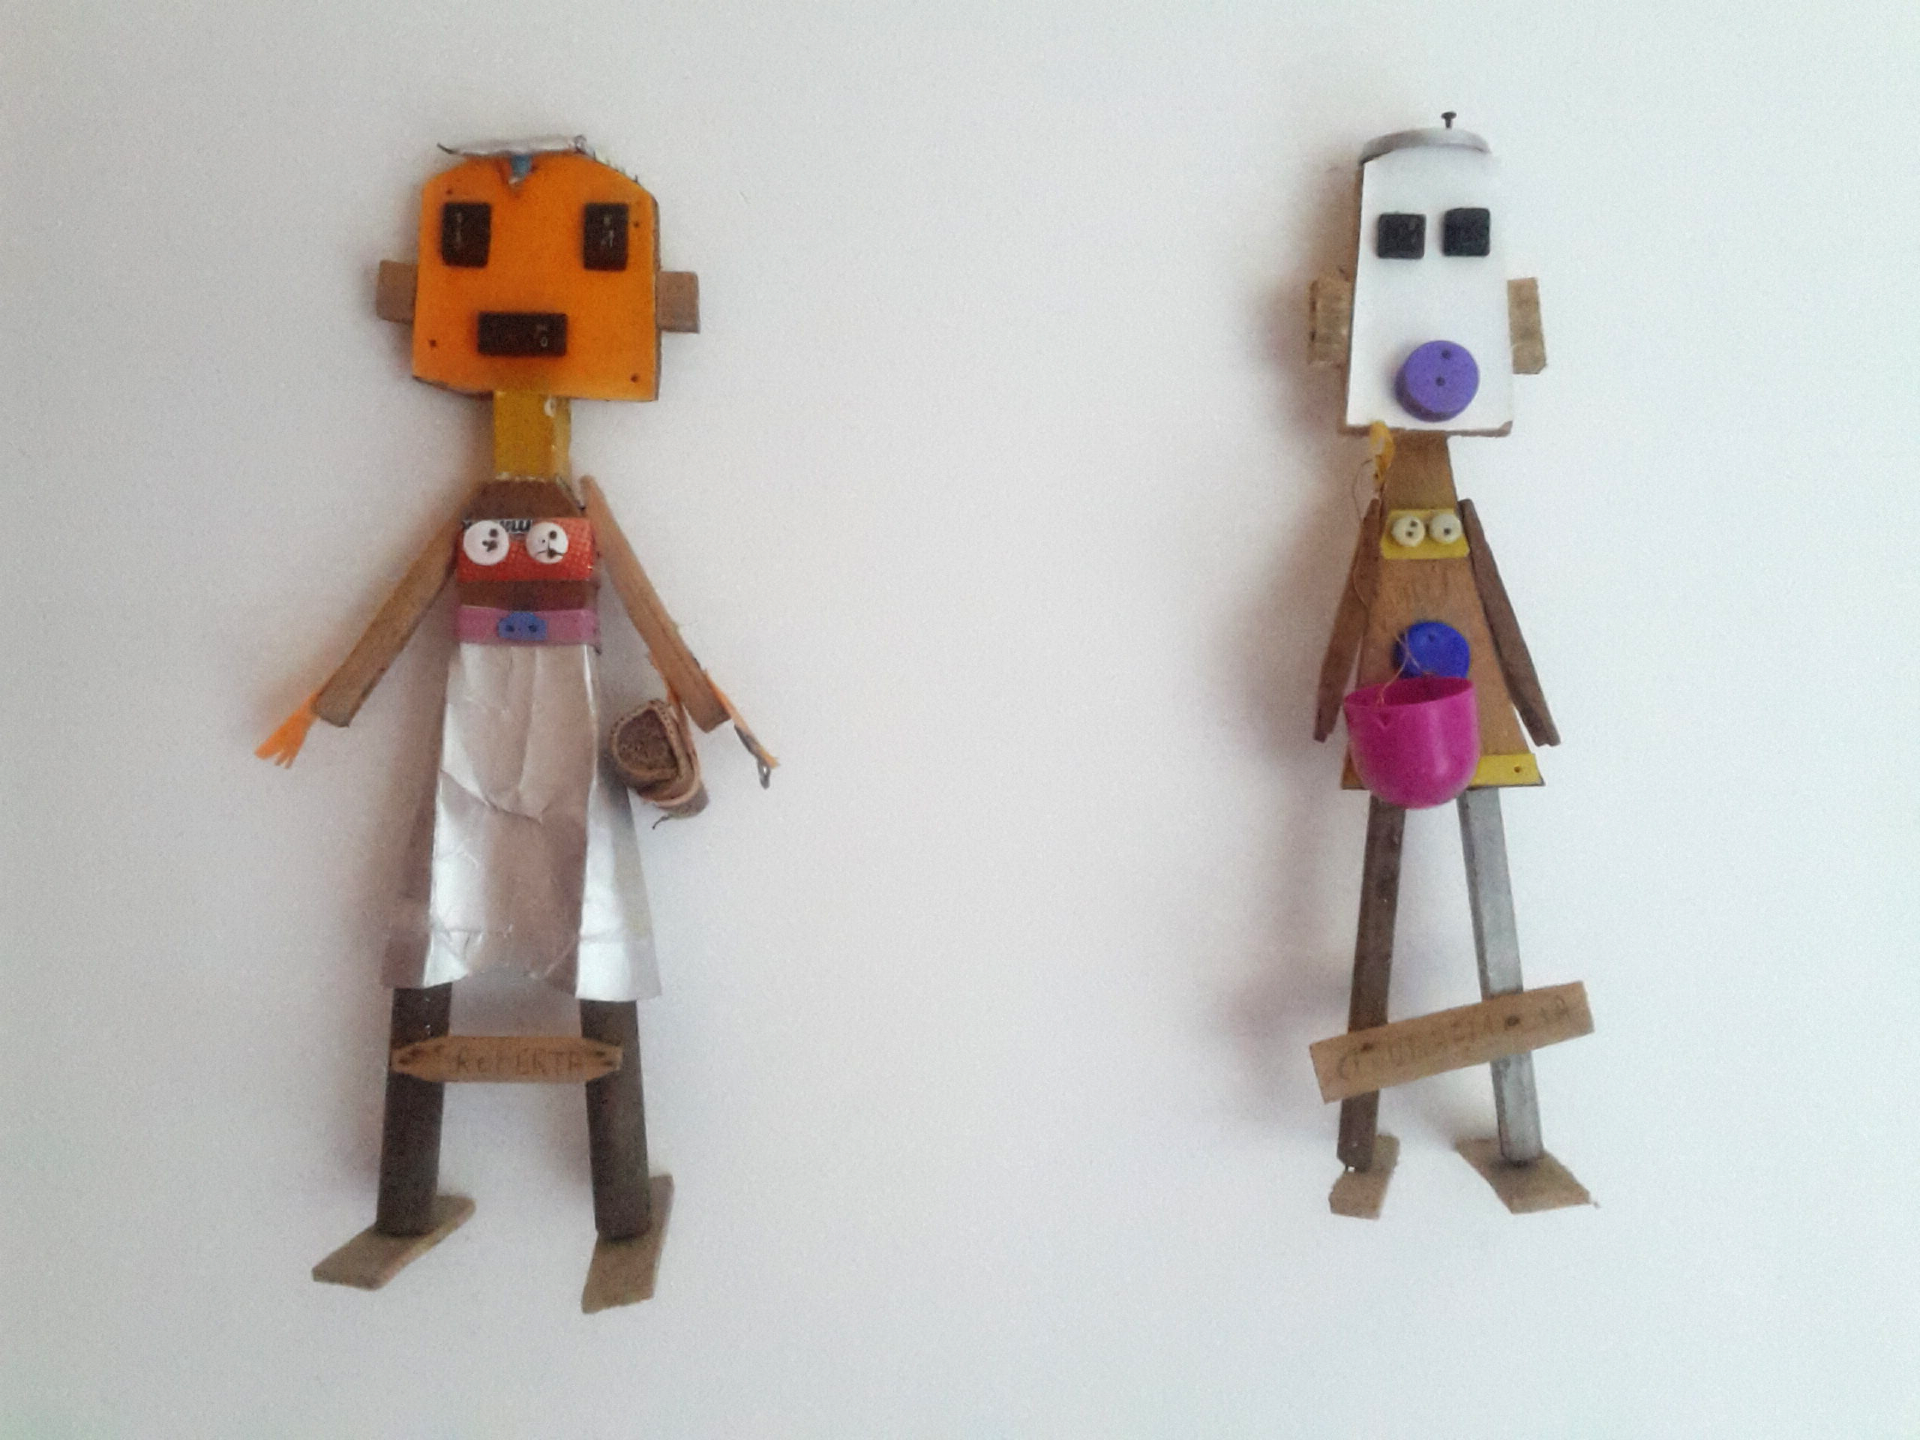 Local artists recycled dolls